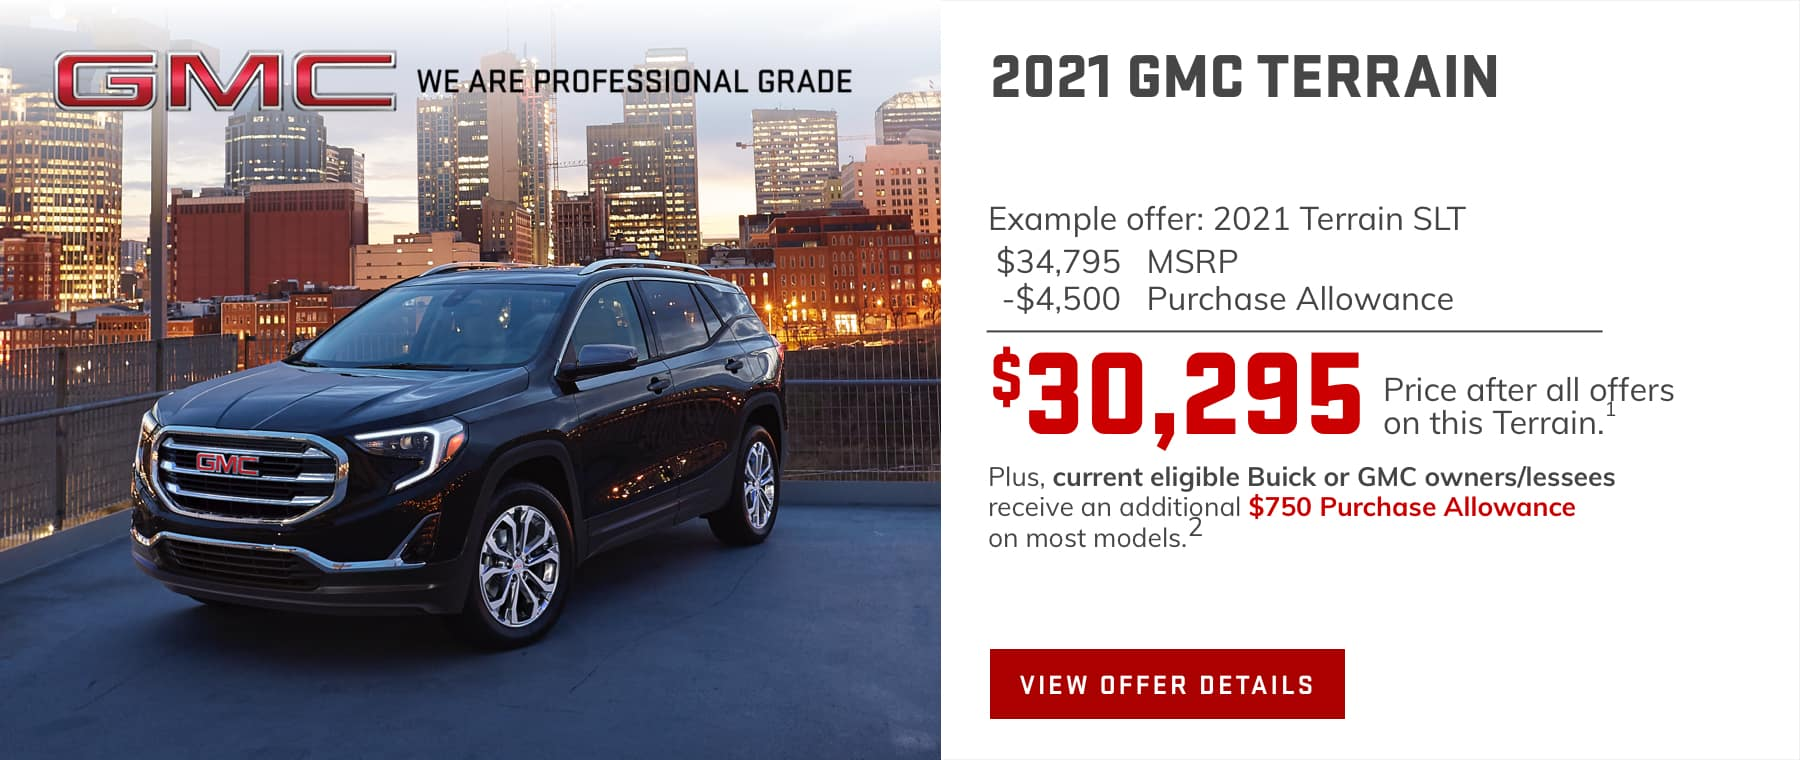 $4,500 Purchase Allowance on most models.1 Plus, current eligible Buick or GMC owners/lessees receive an additional $750 Purchase Allowance on most models.2